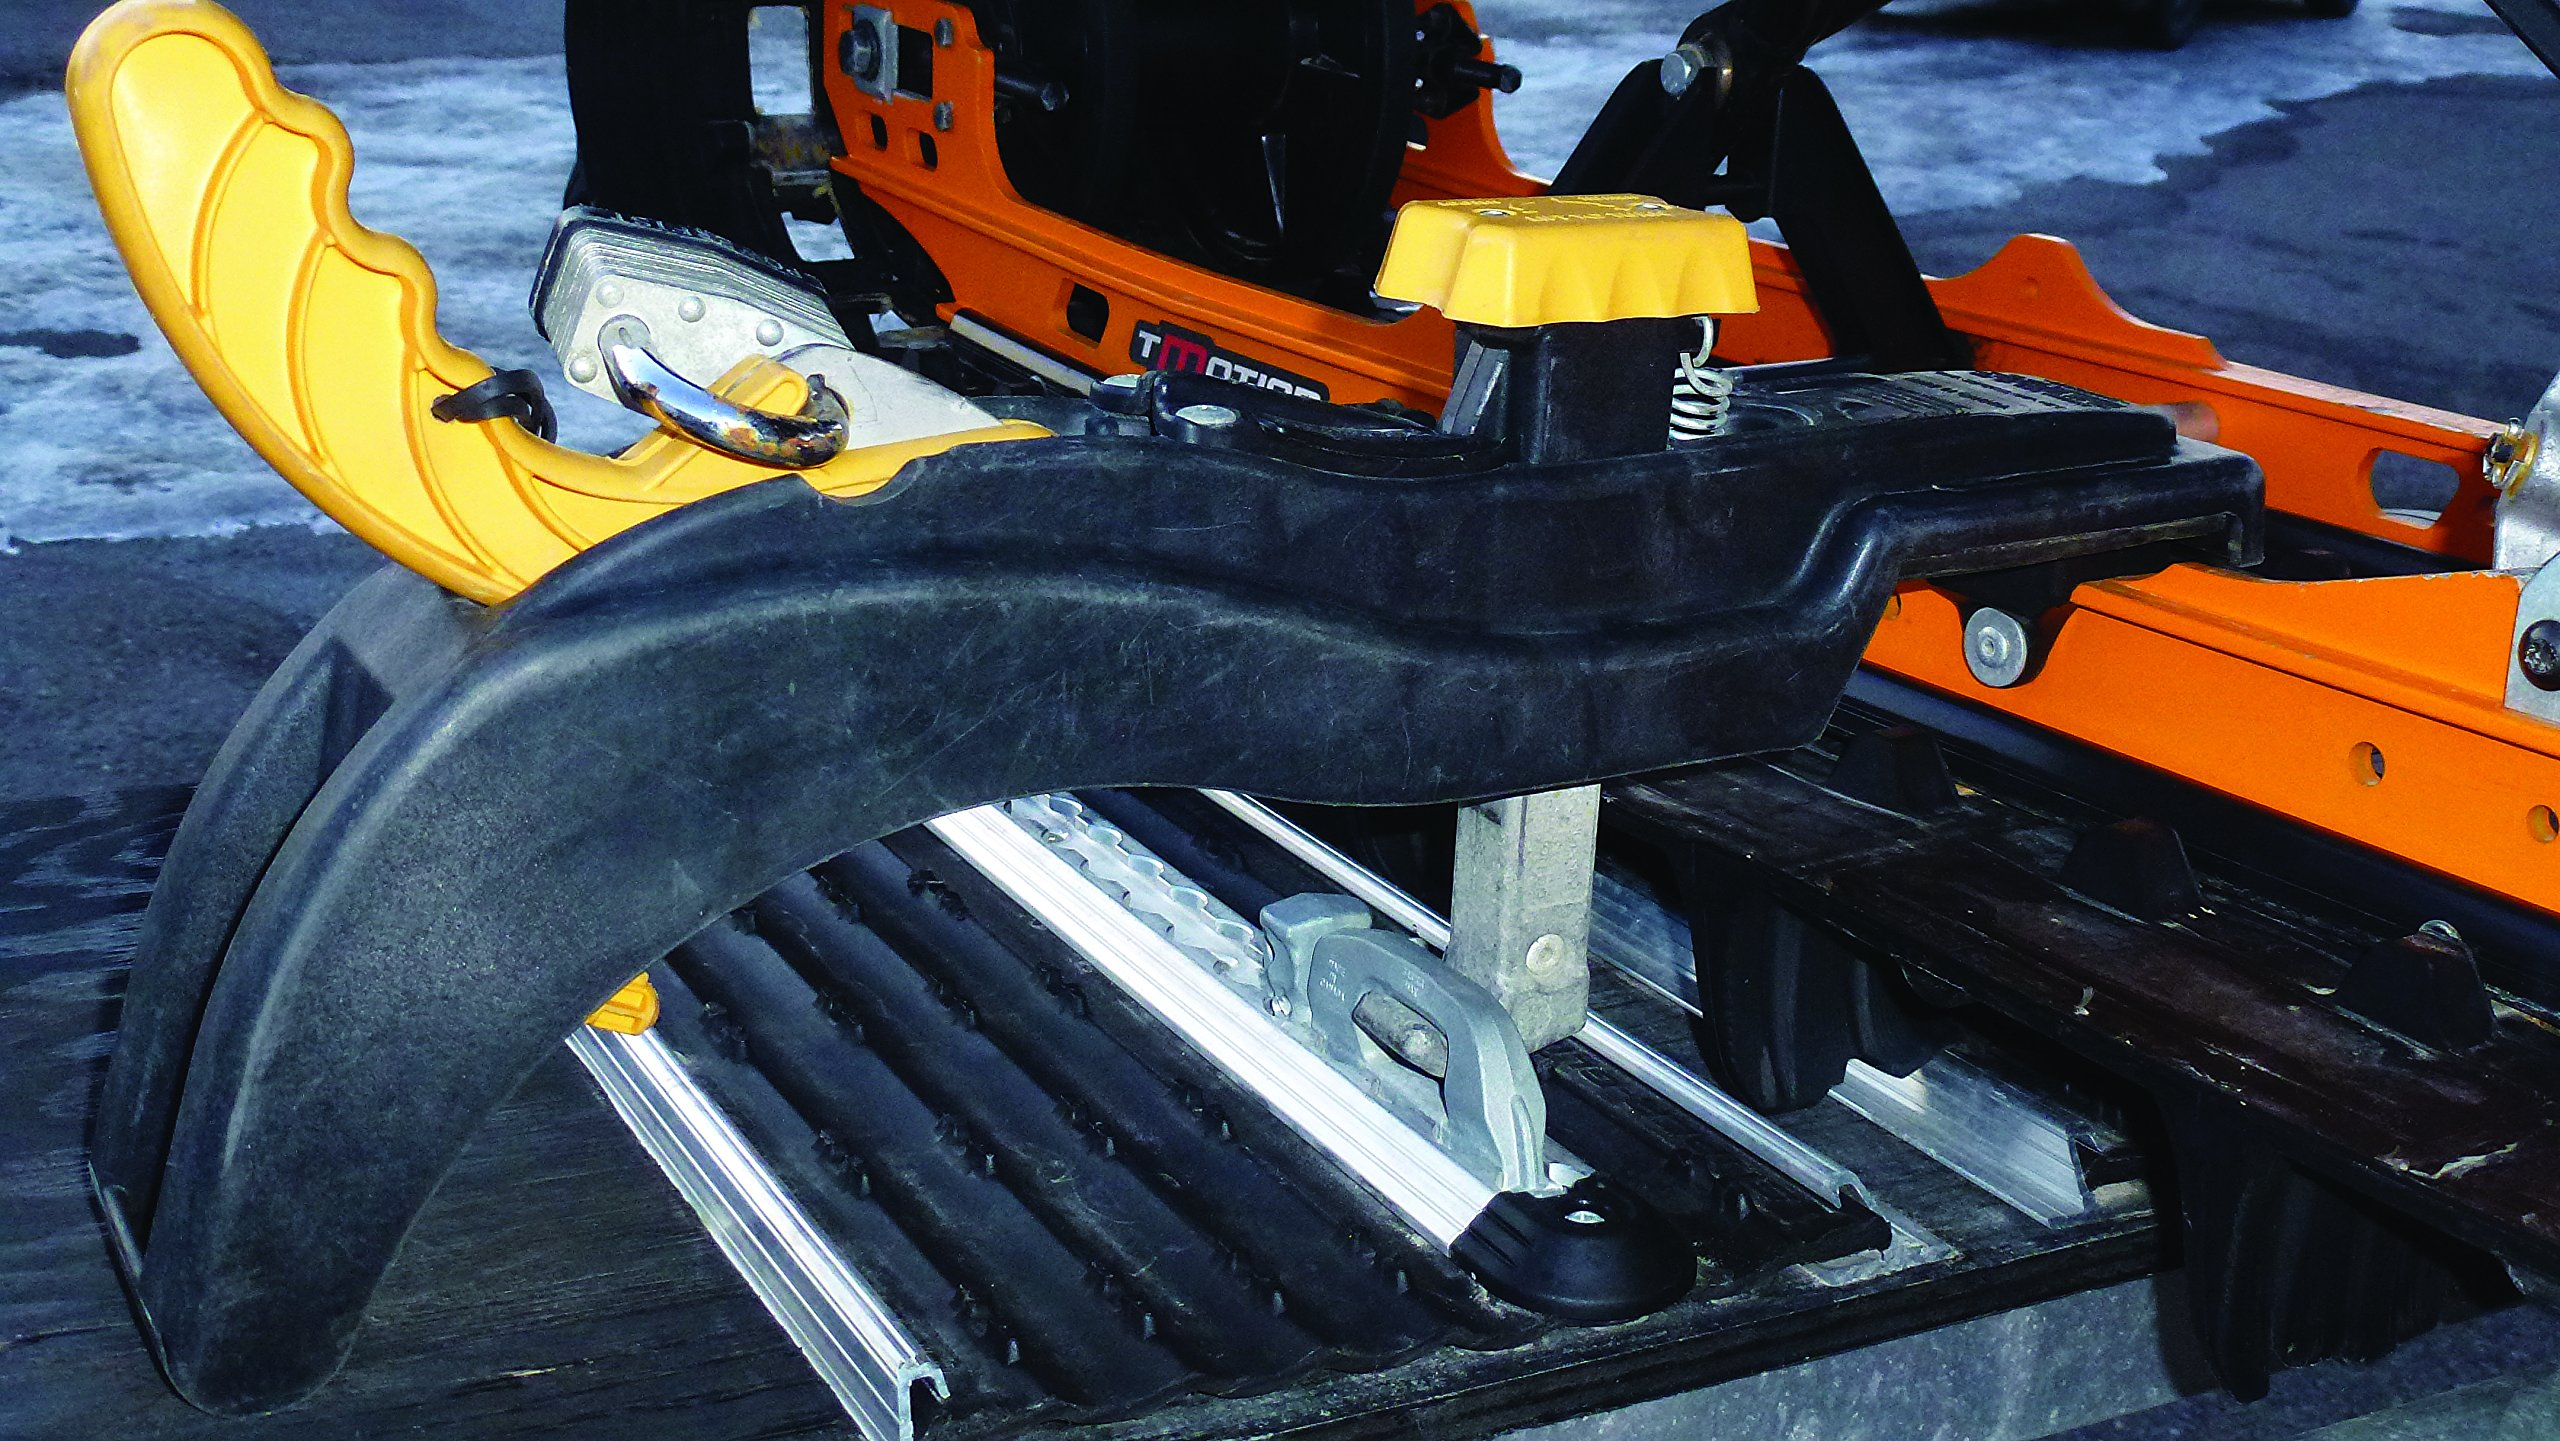 Super Clamp Tie-Down System, Superclamp II by Superclamp